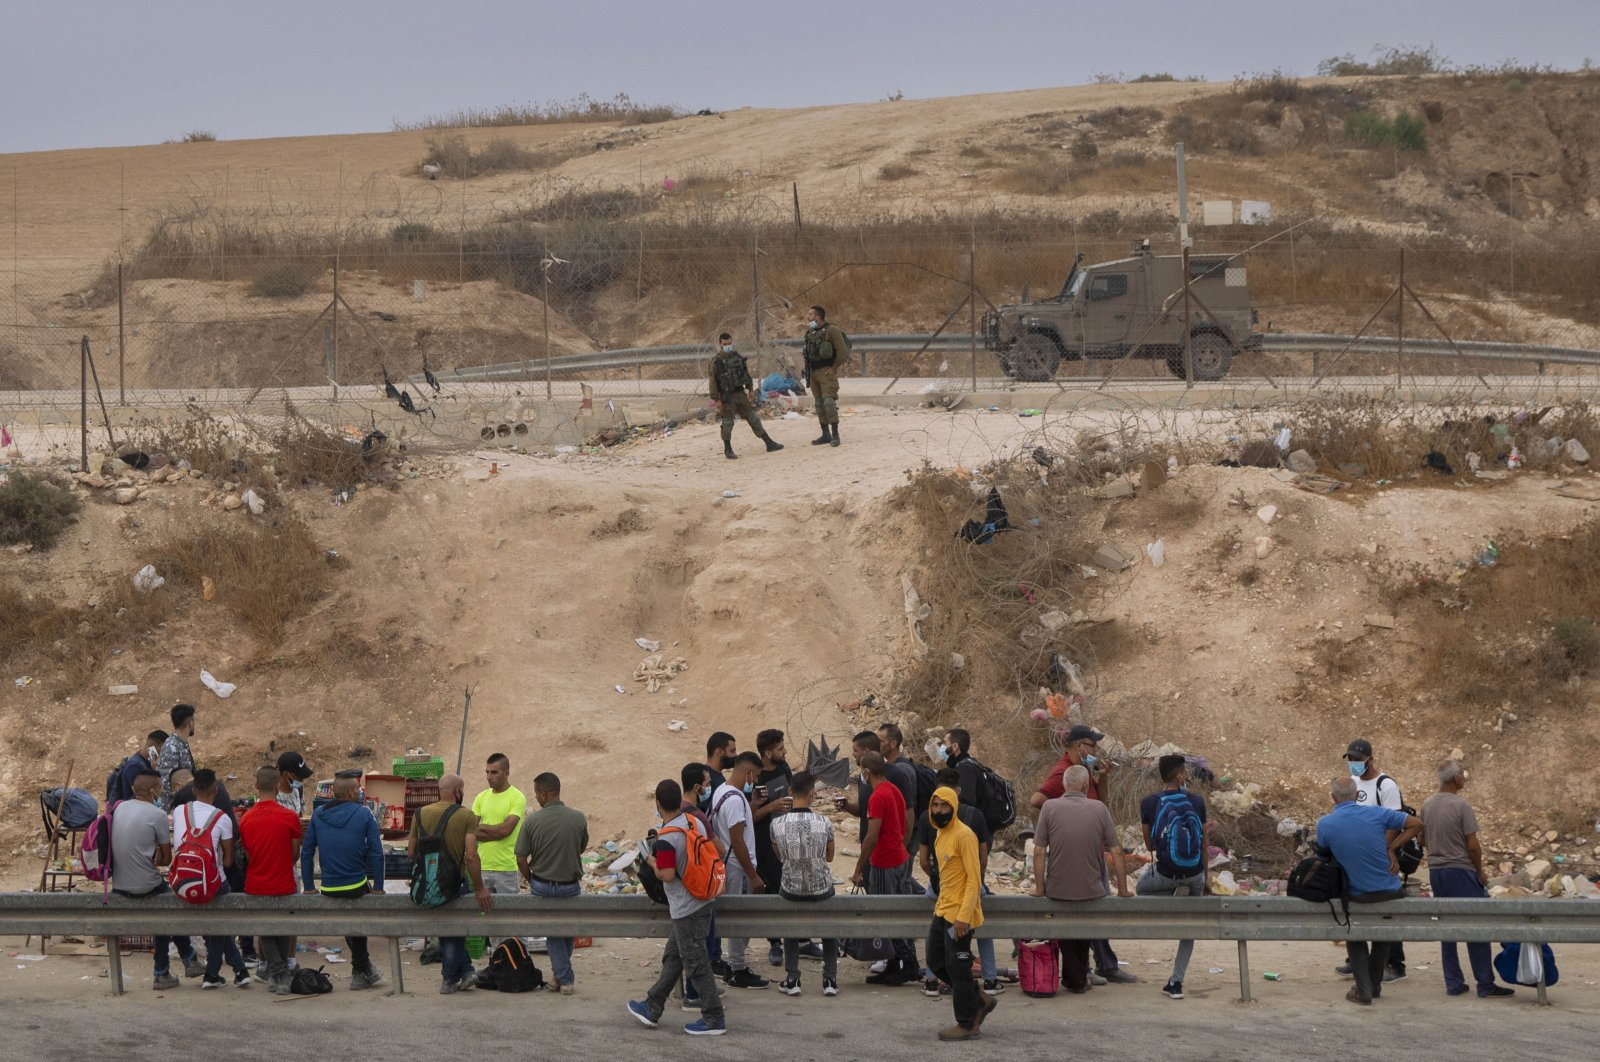 Israeli soldiers prevent Palestinian laborers from crossing illegally into Israel from the West Bank through an opening in a fence, south of the West Bank town of Hebron, Sept. 6, 2020. (AP Photo)